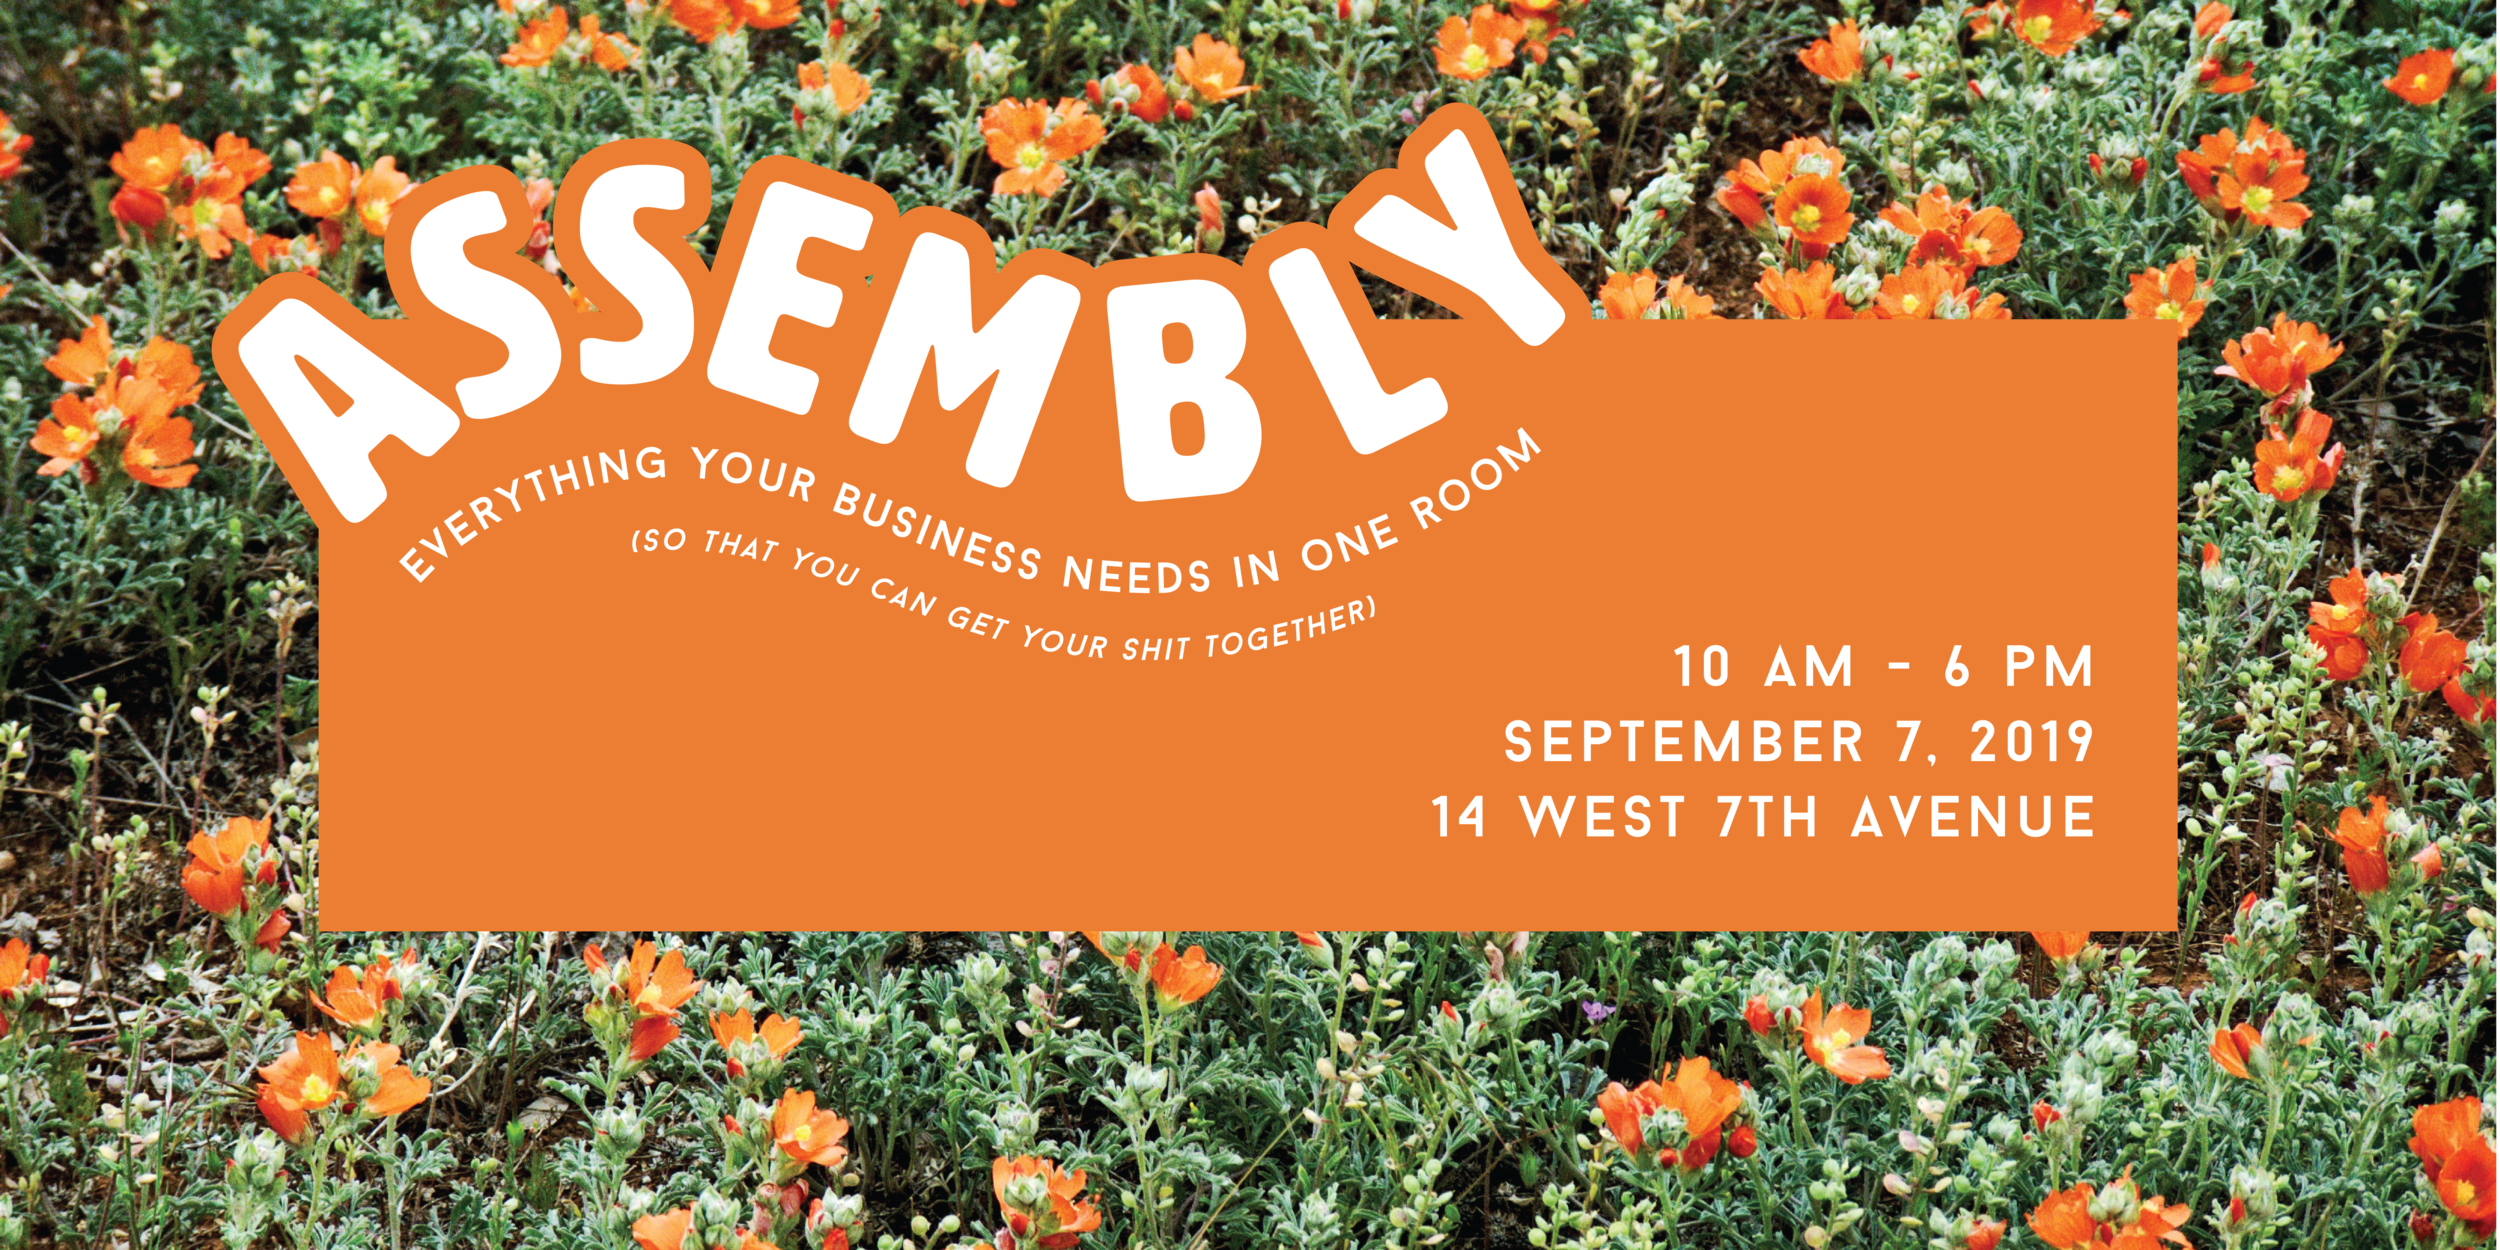 Assembly event graphic in bright orange on a photo of orange flowers